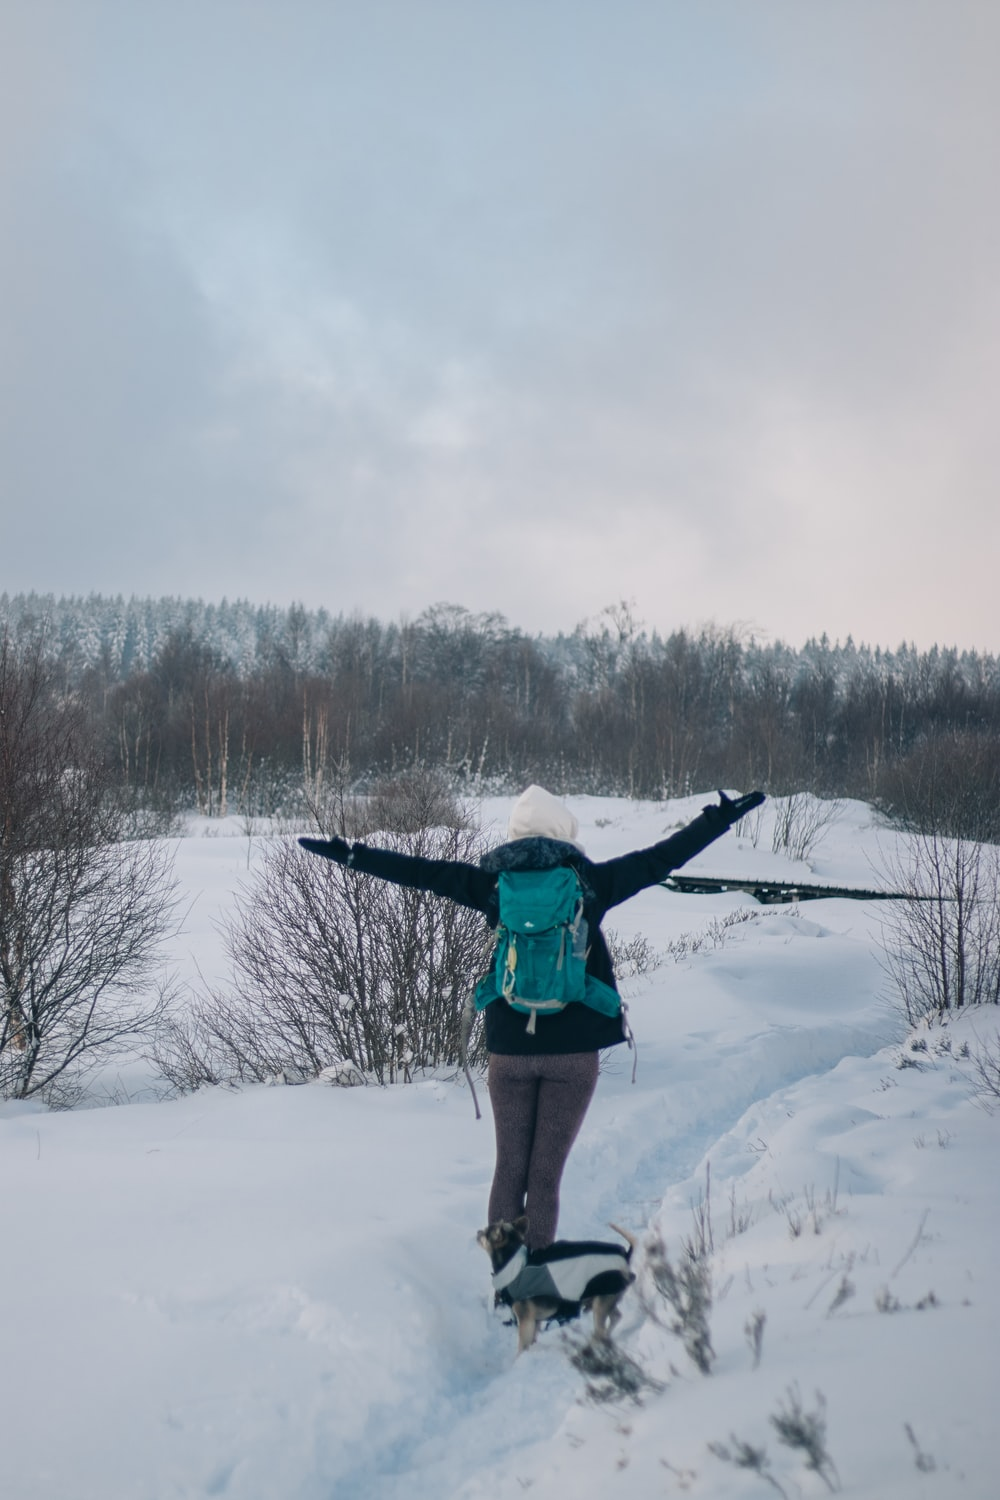 person in blue jacket and green pants standing on snow covered ground during daytime